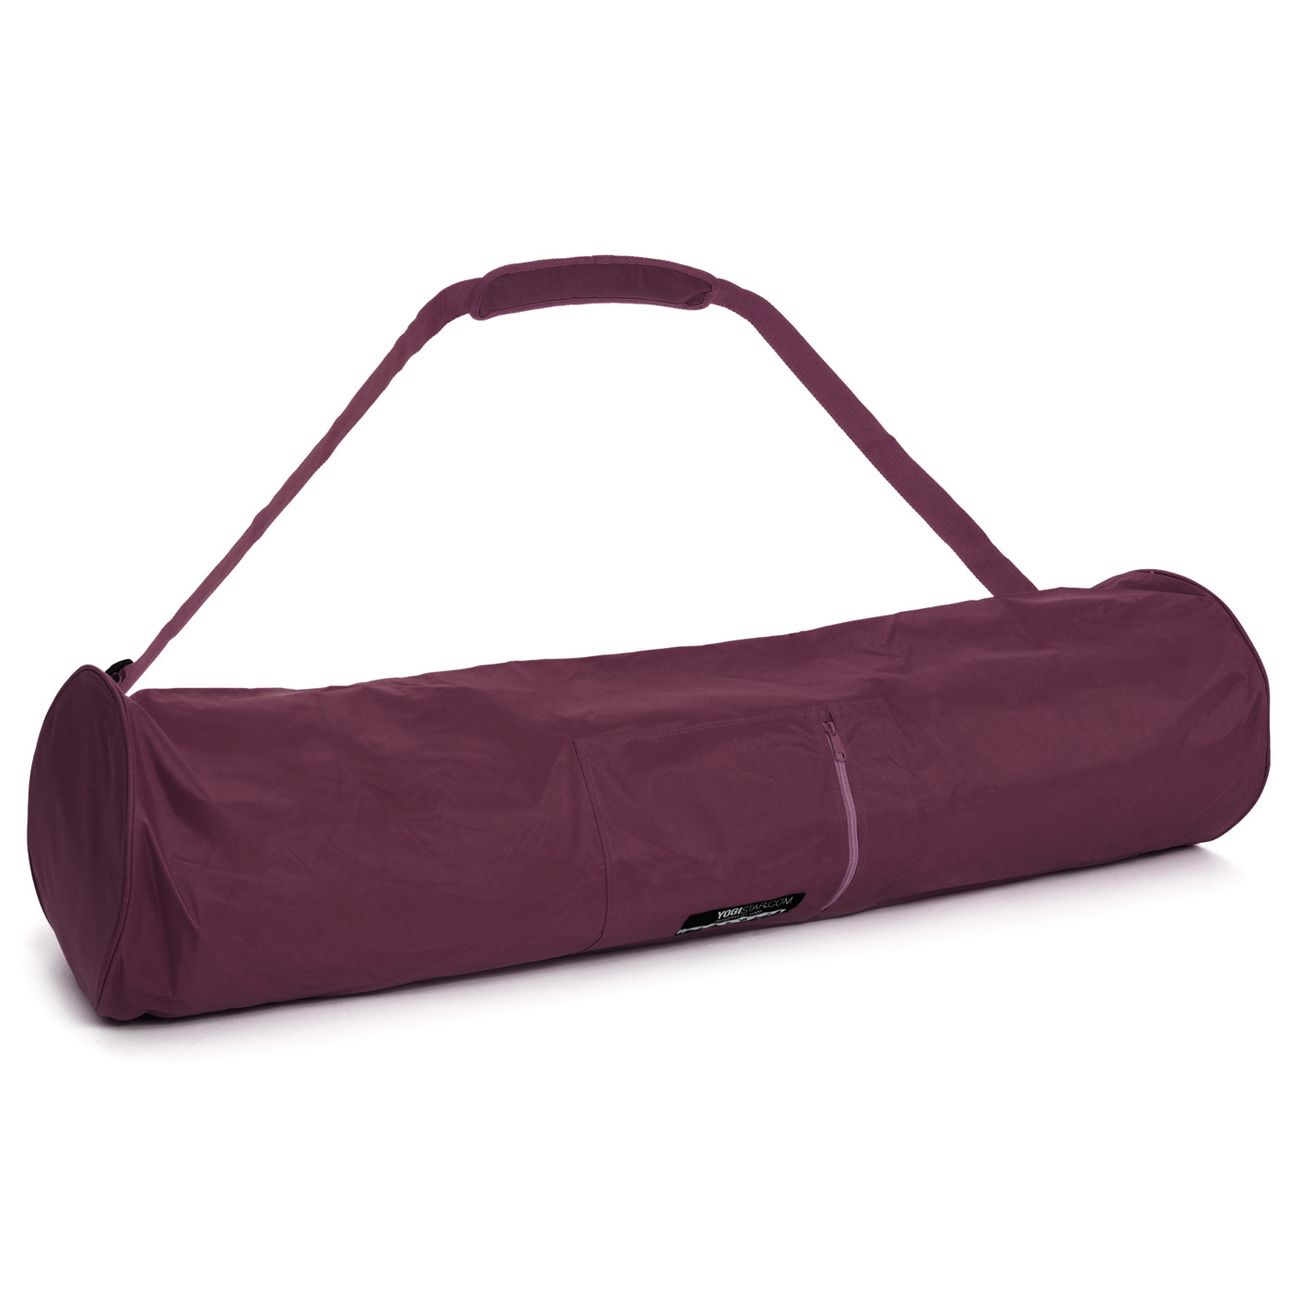 Yoga  YOGISTAR Sac de yoga basic - zip - extra big - nylon - 109 cm bordeaux